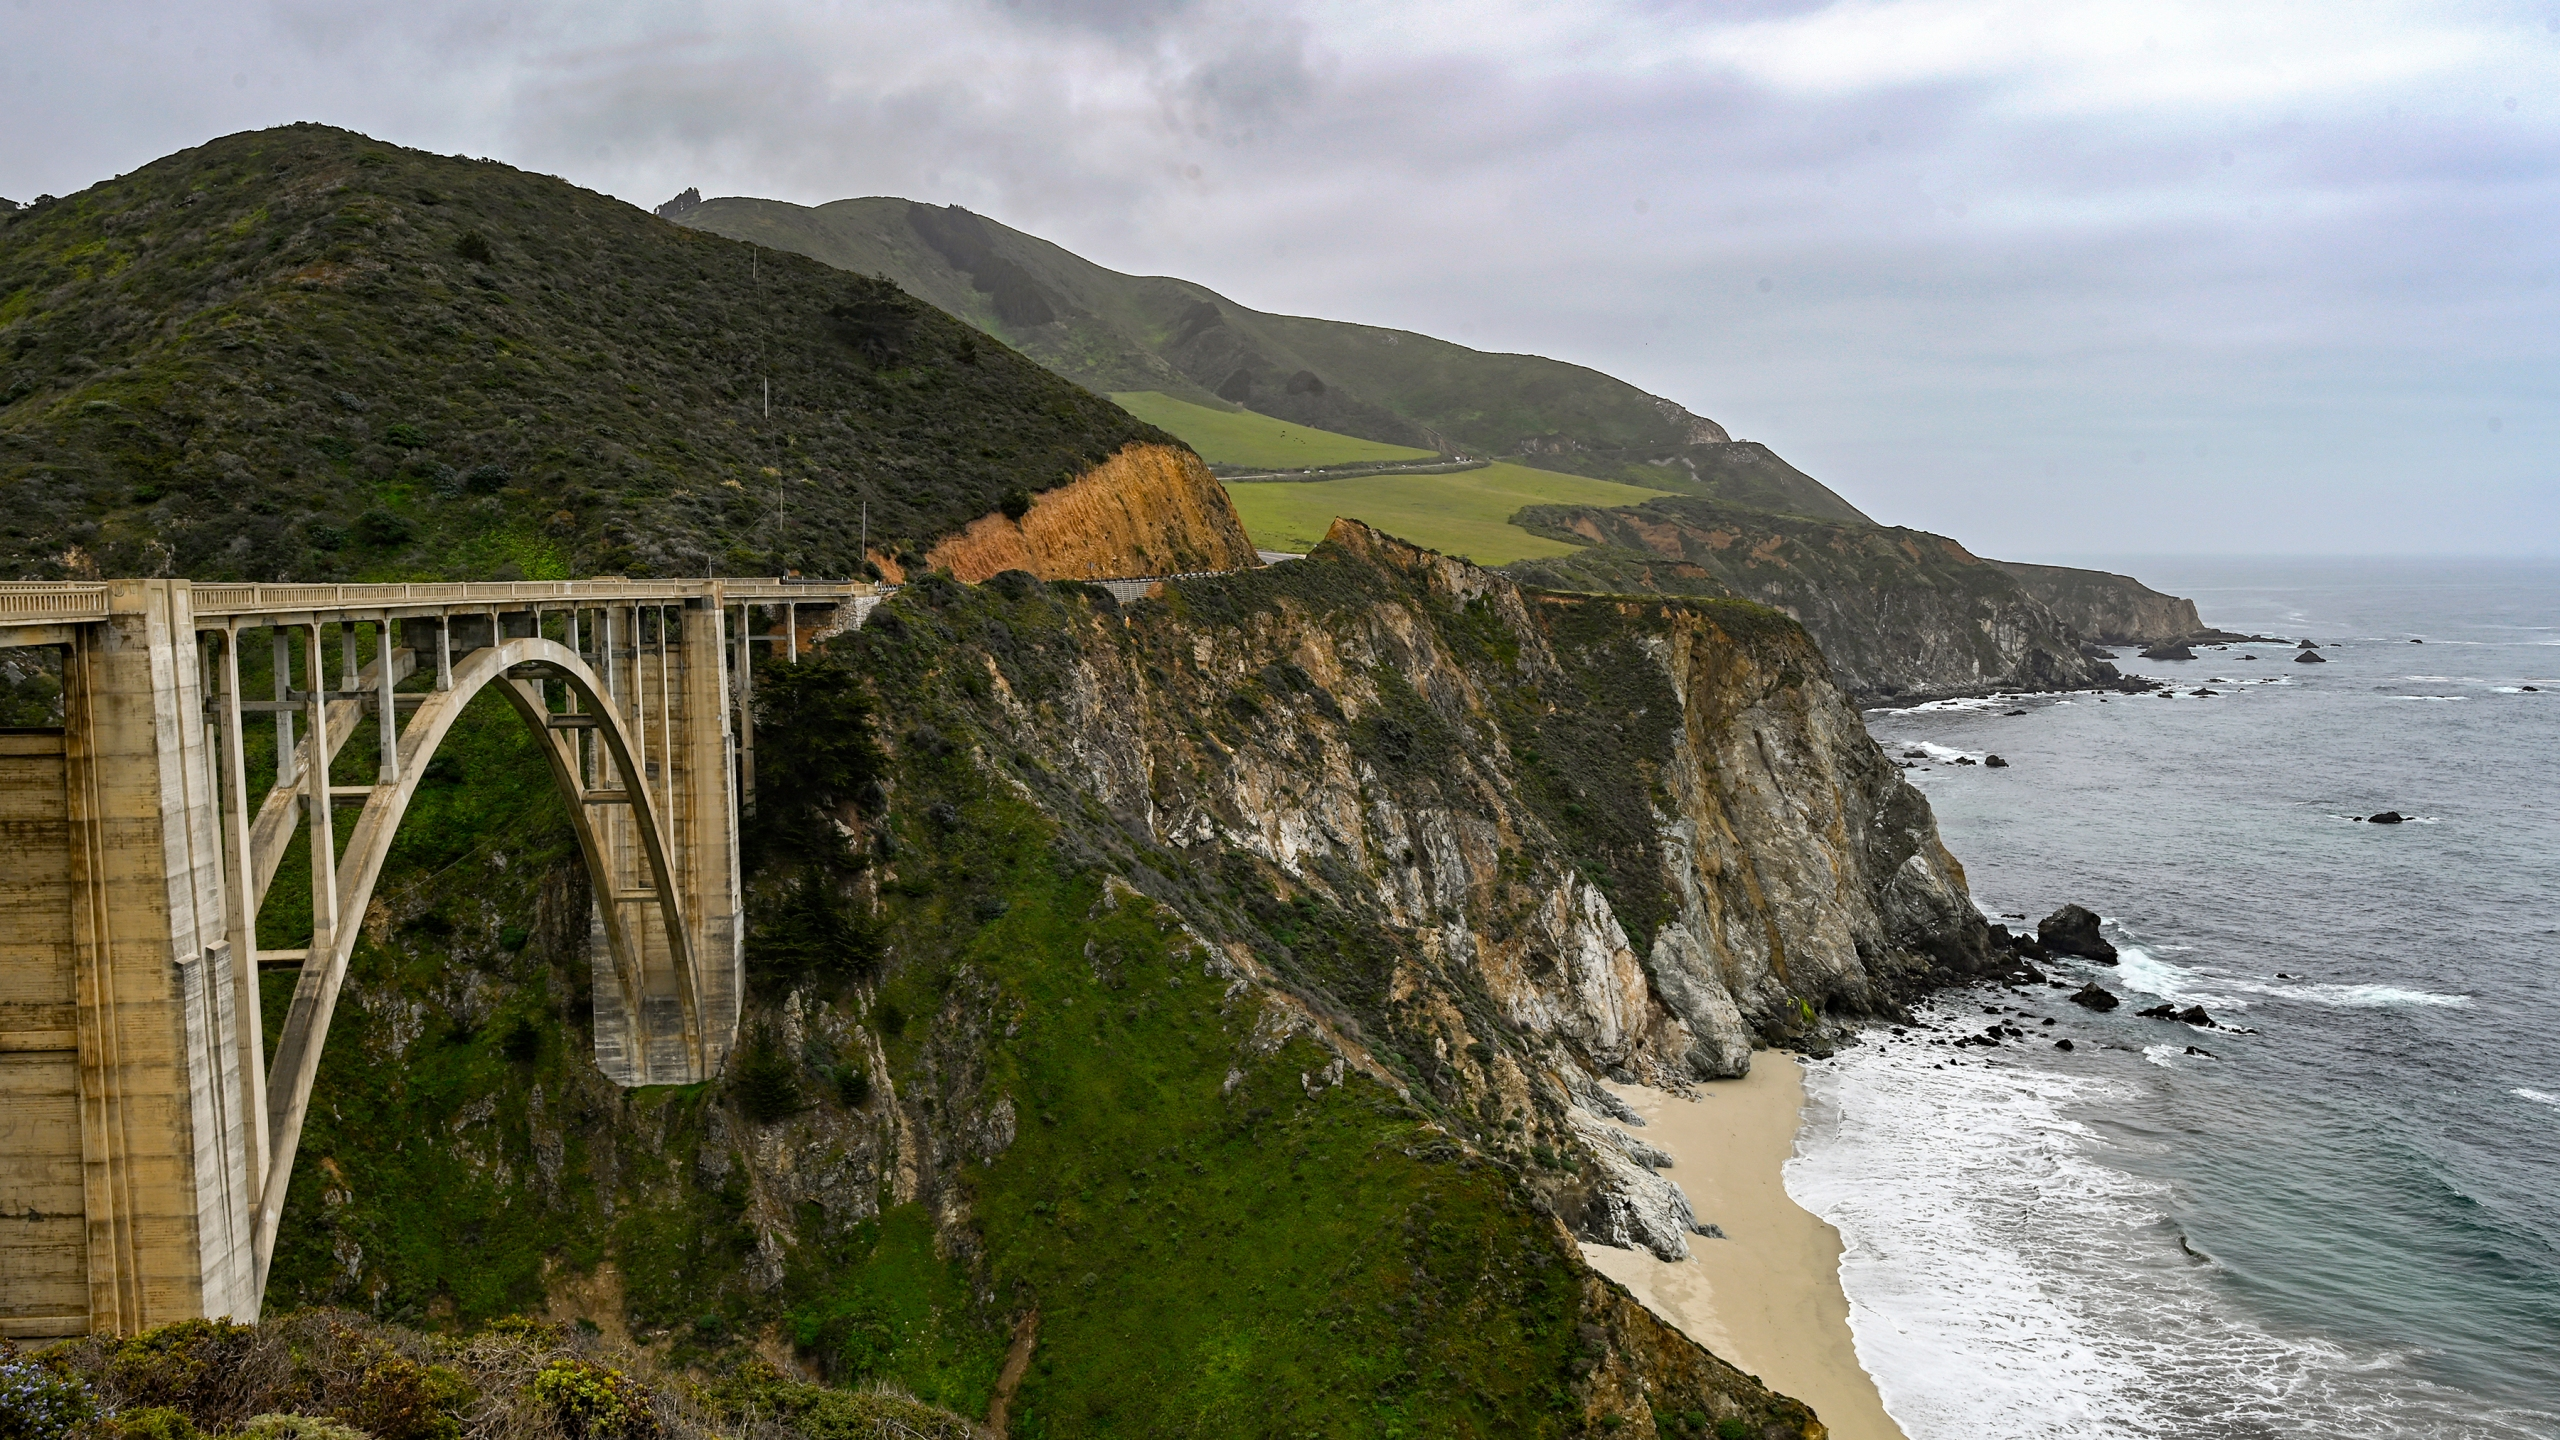 Bixby Bridge on Highway 1 near Big Sur, Calif., is seen on April 23, 2021. A section of California's scenic Highway 1 that collapsed during a winter storm in January 2021 has reopened to traffic. (AP Photo/Nic Coury)